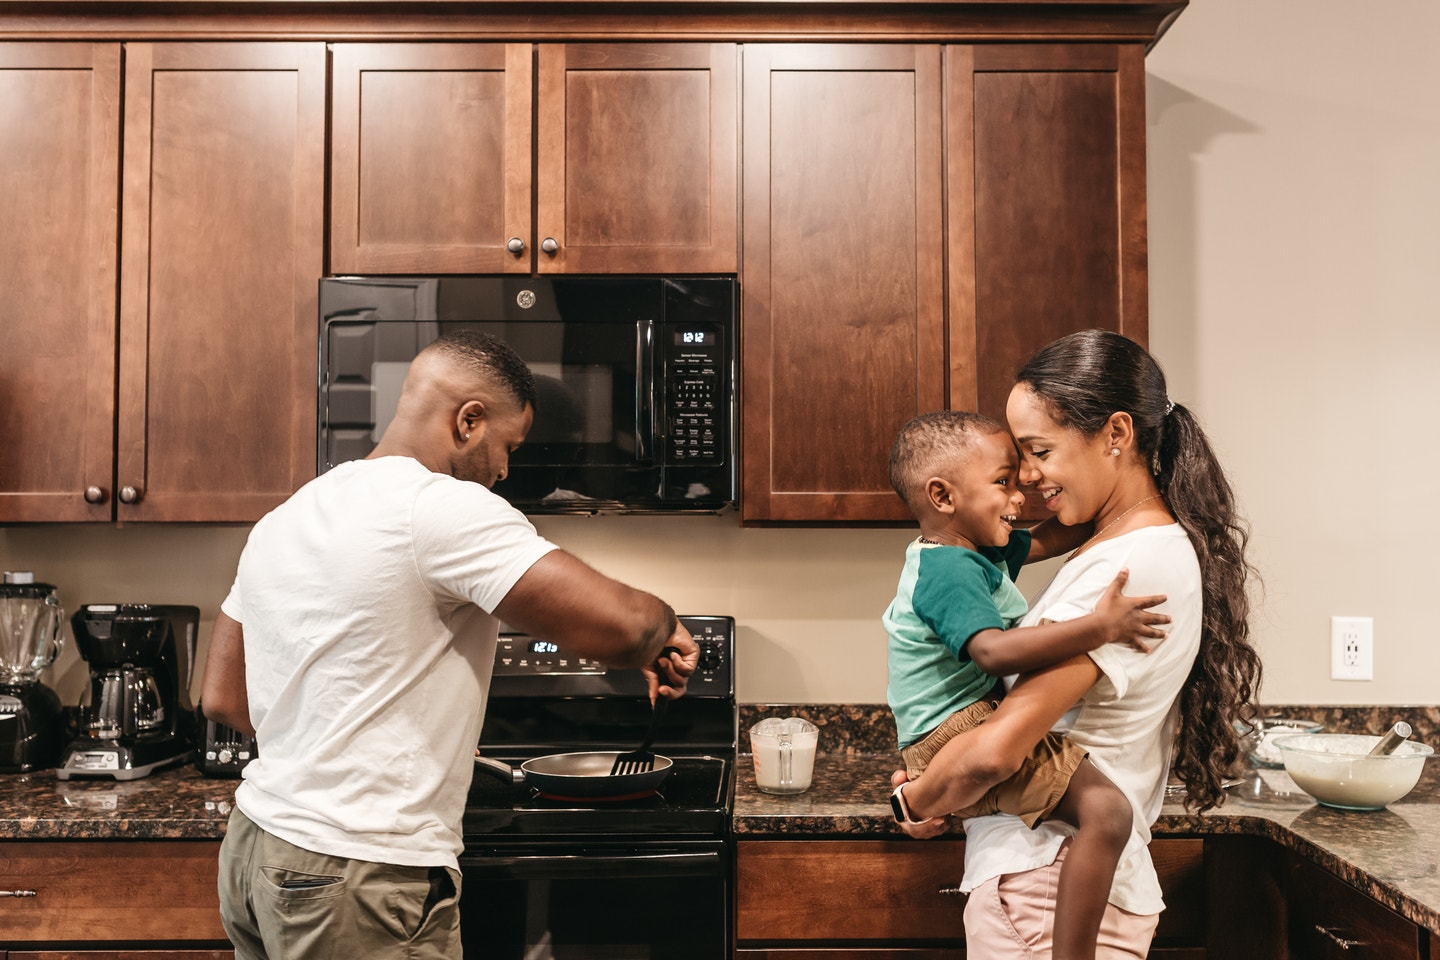 Family cooking in a kitchen in a villa